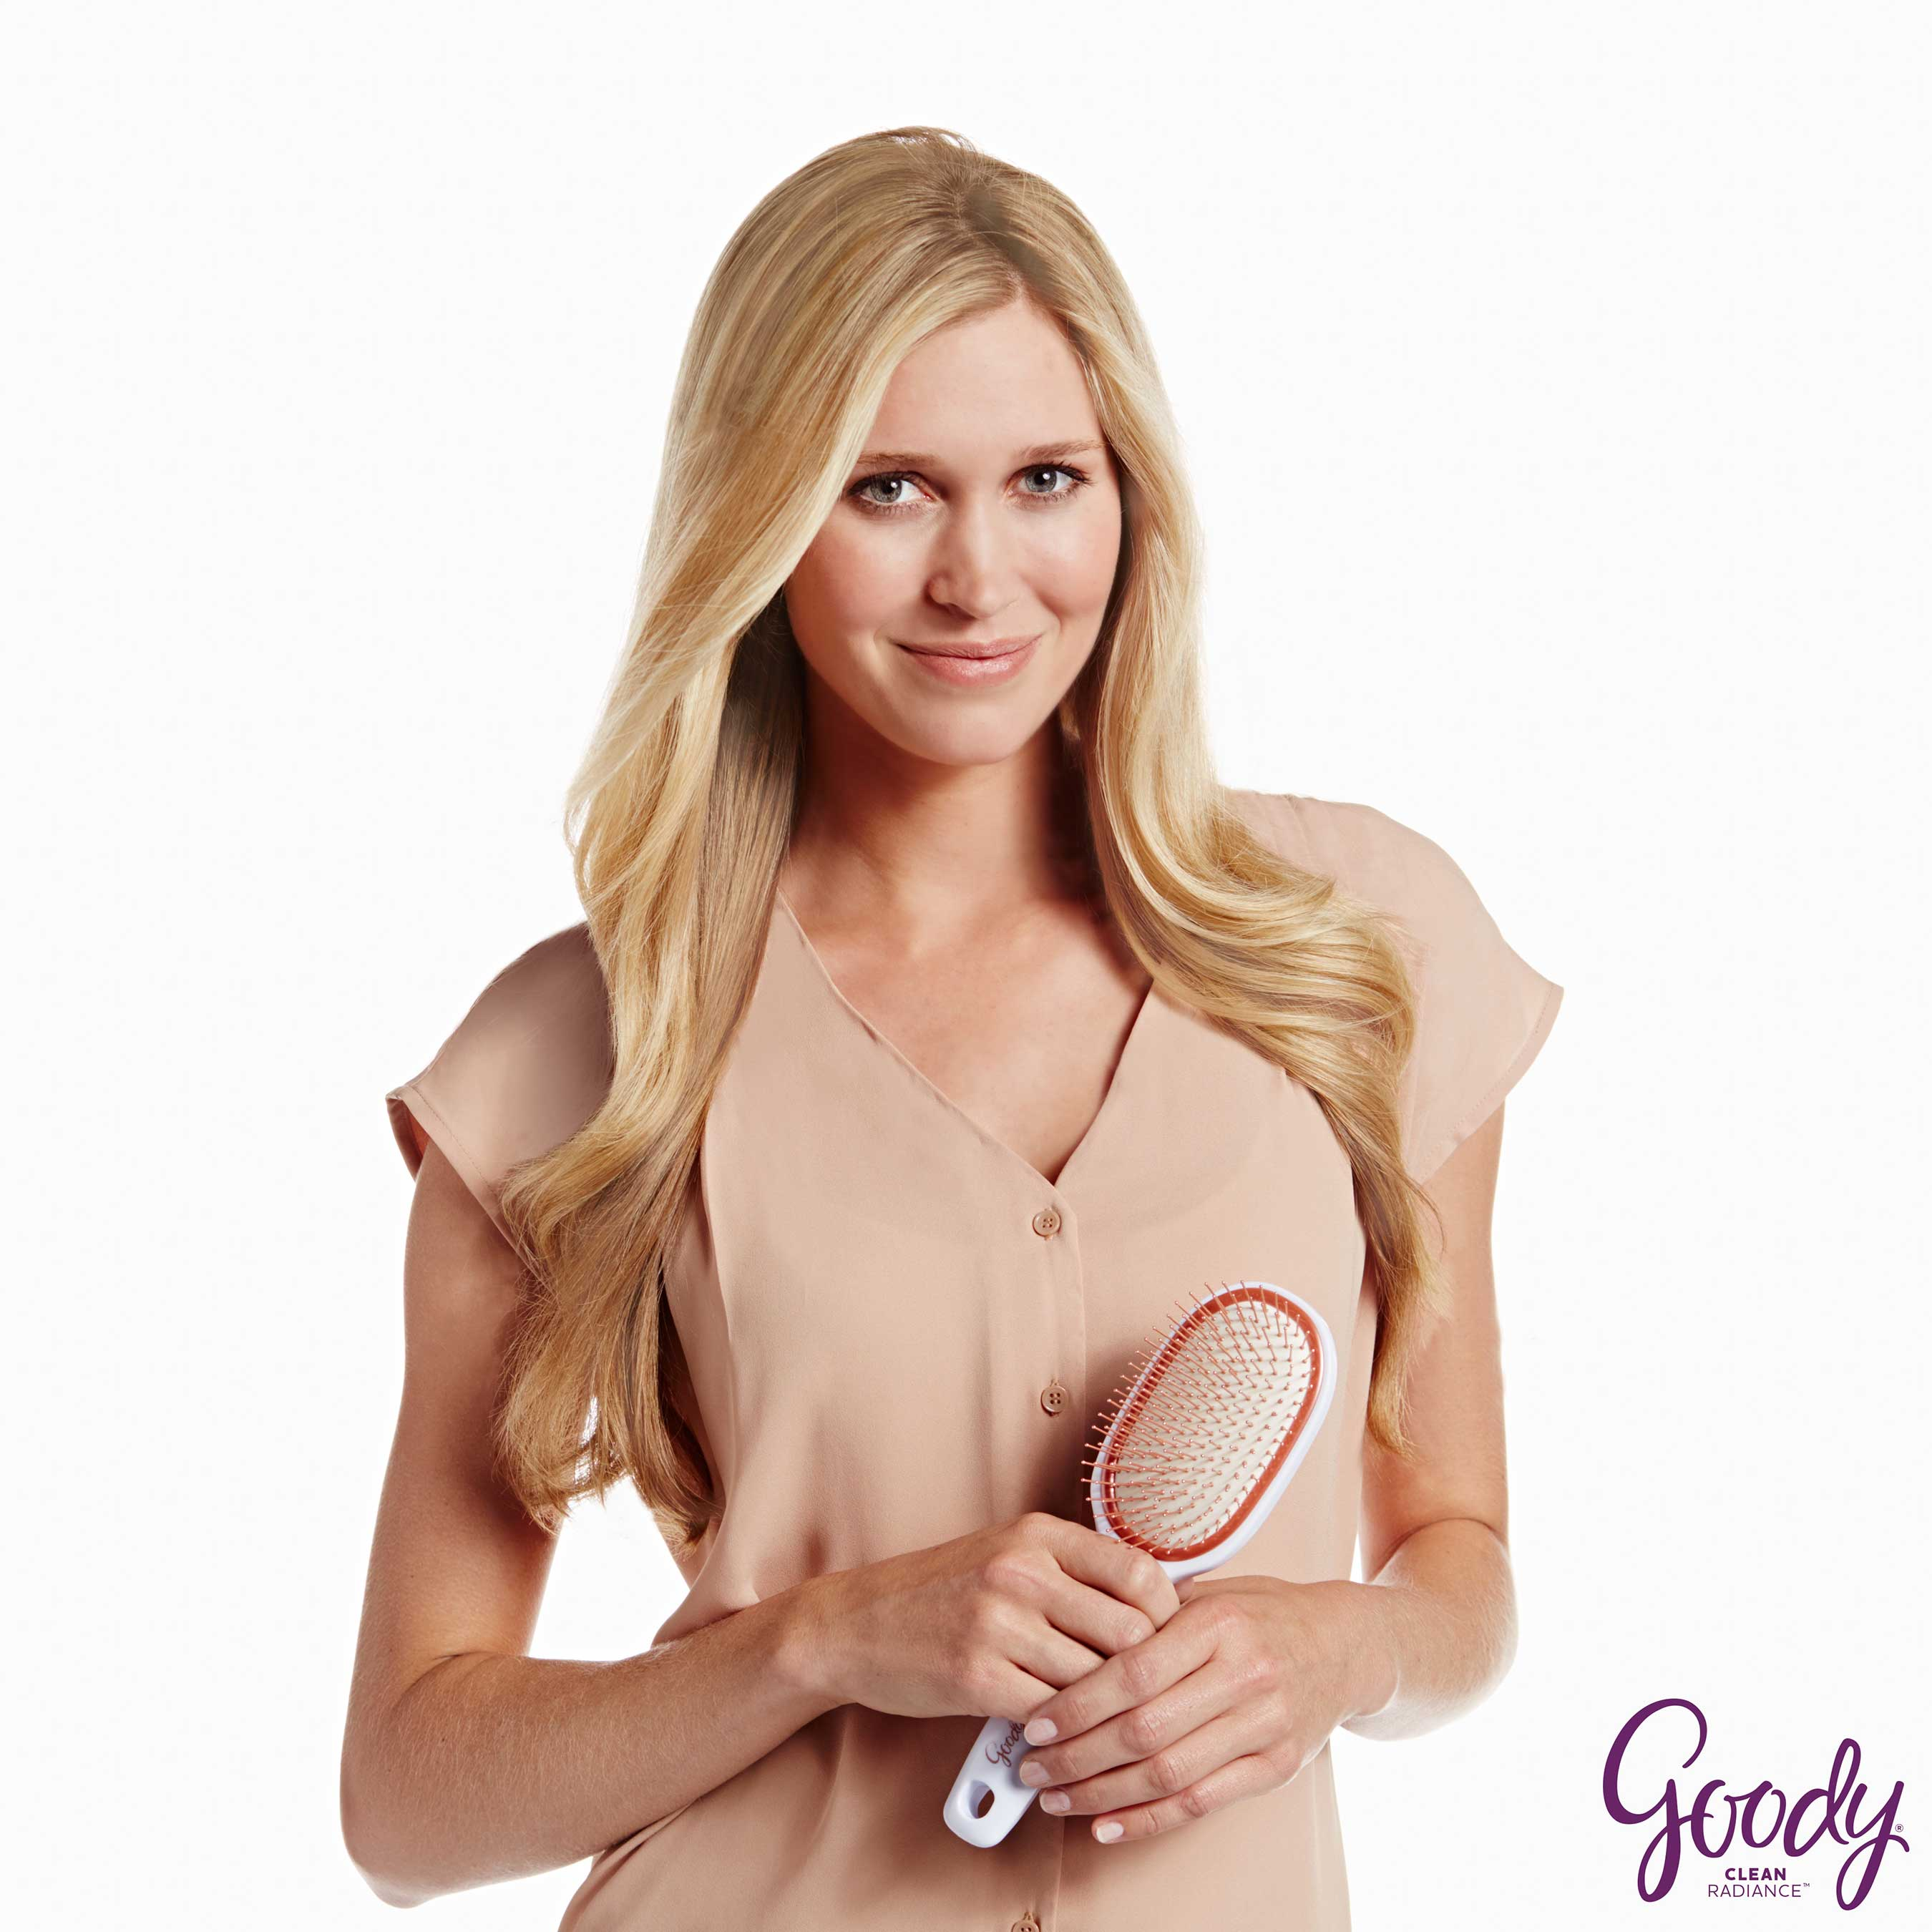 Show off beautiful, healthier looking hair with new Goody Clean Radiance brushes!